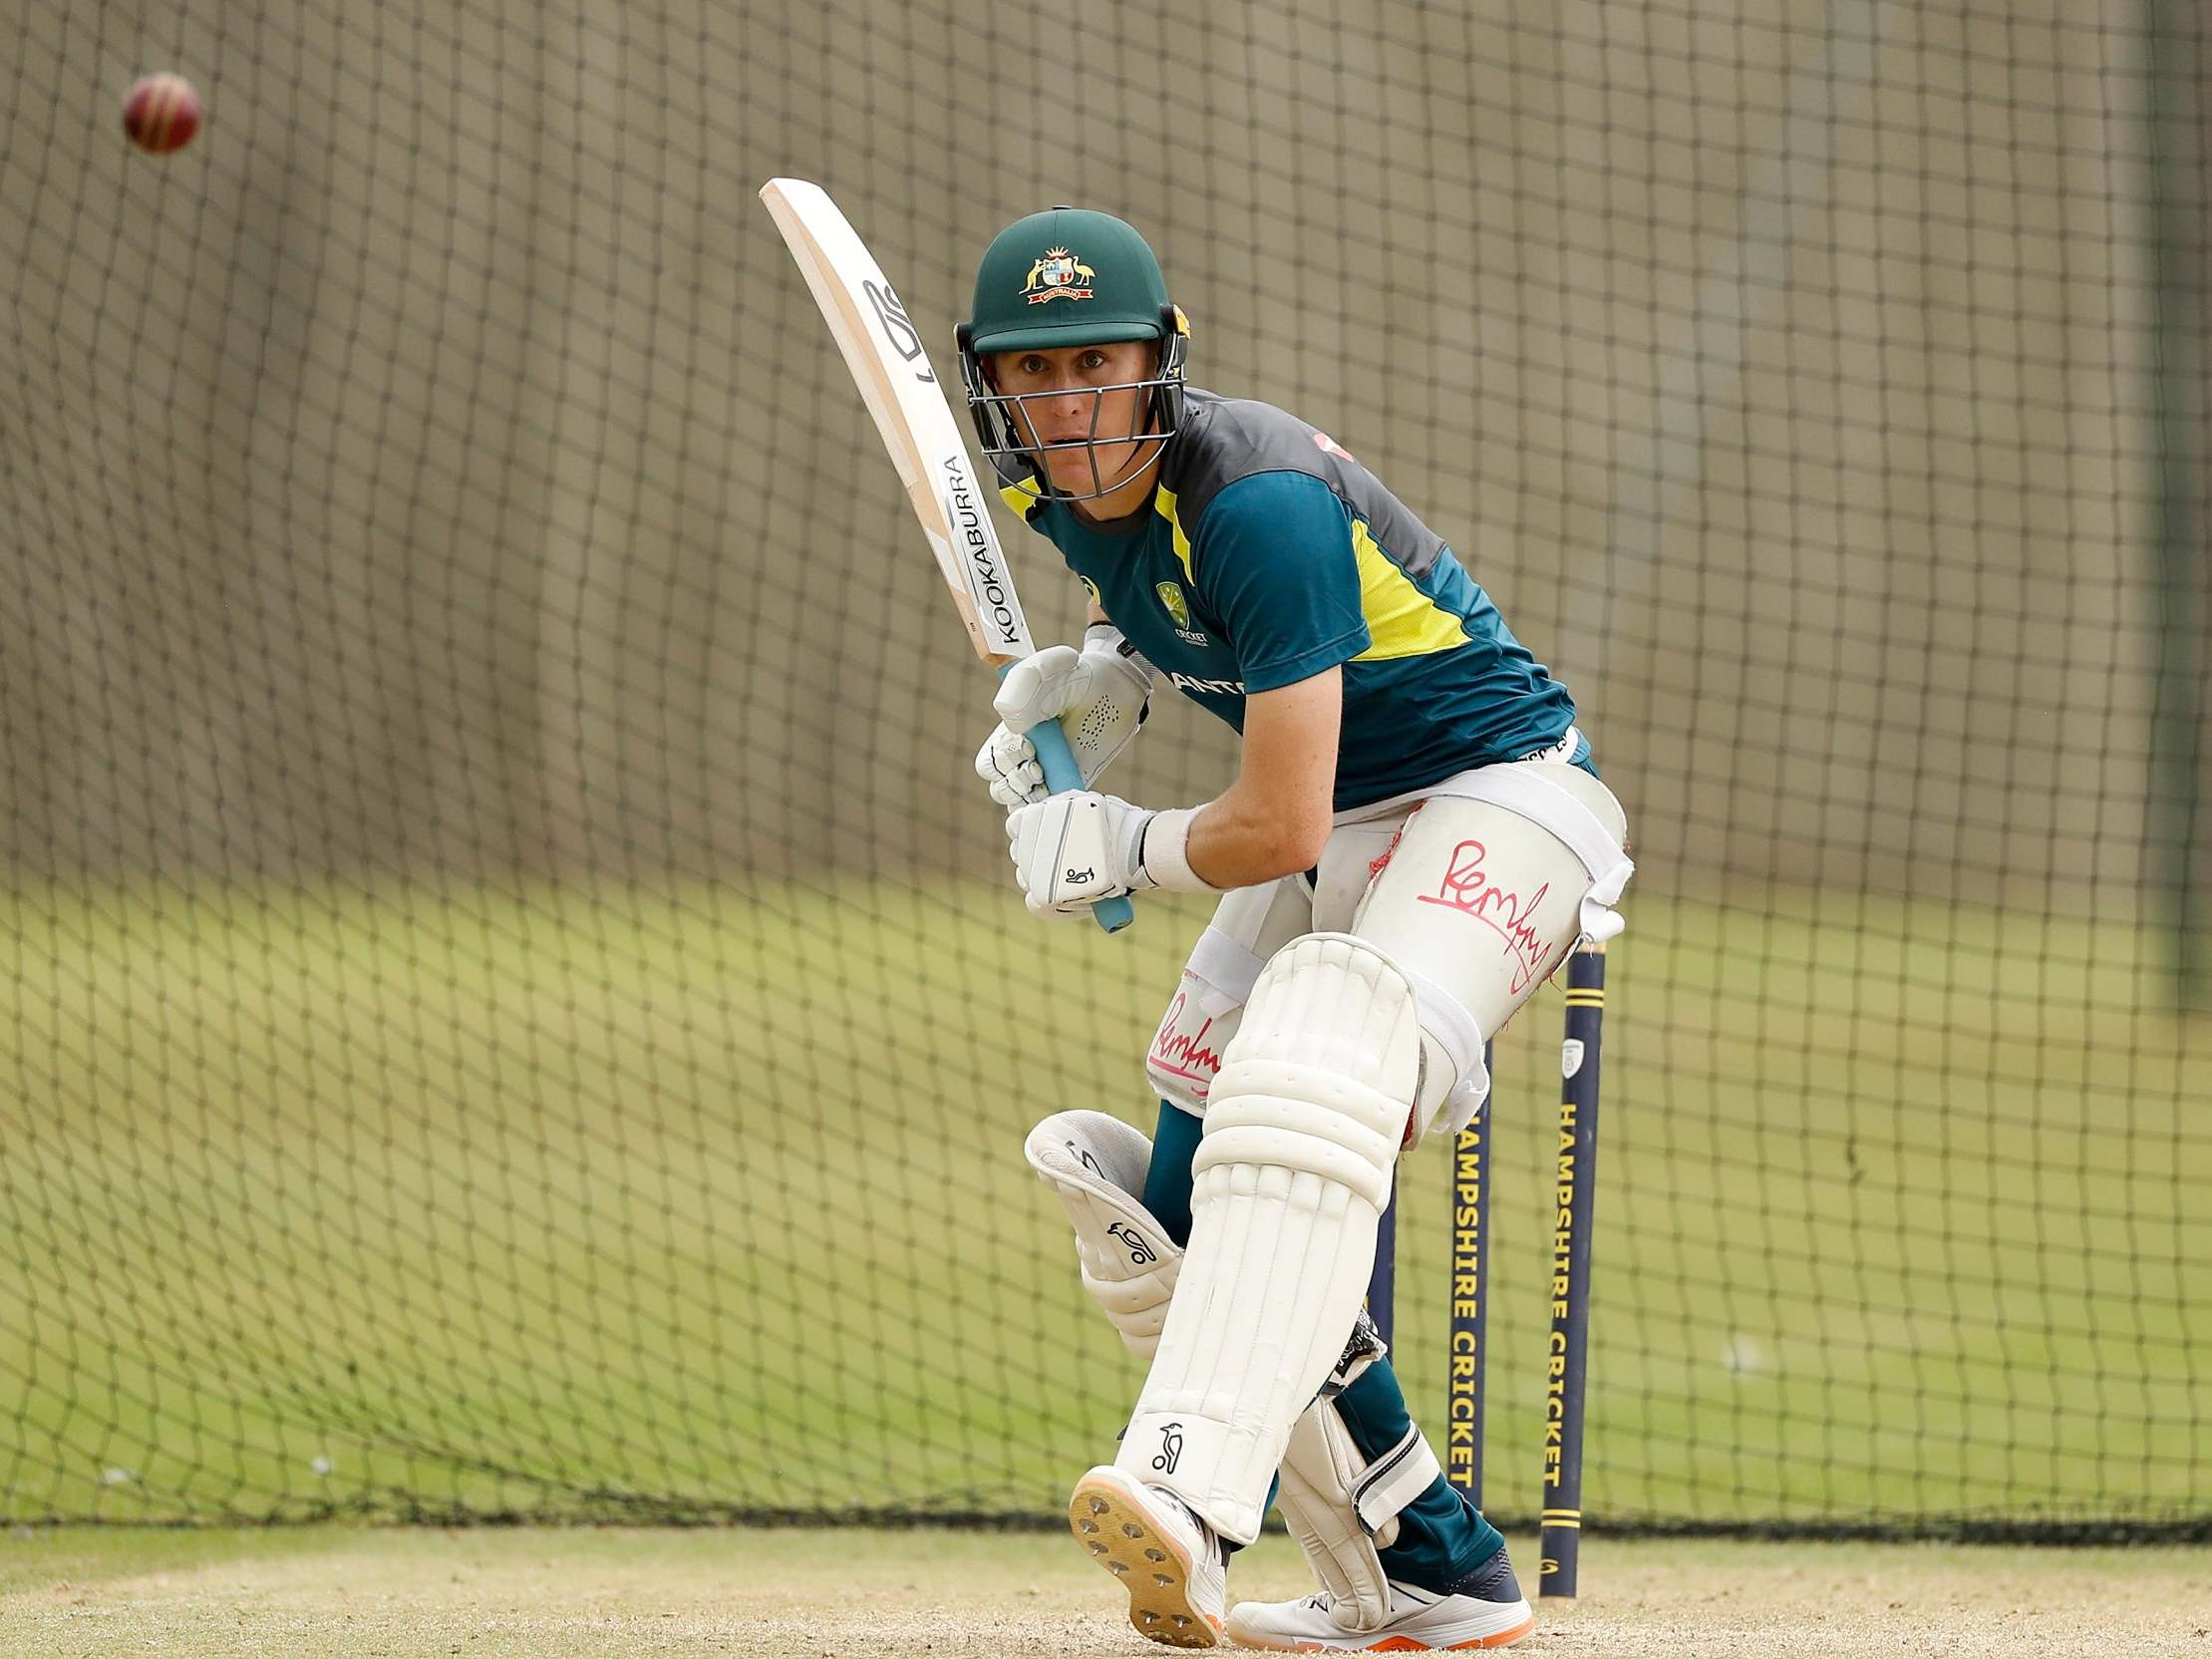 Marnus Labuschagne: Australian outsider looks to Christianity to provide perspective on cricket as Ashes berth beckons